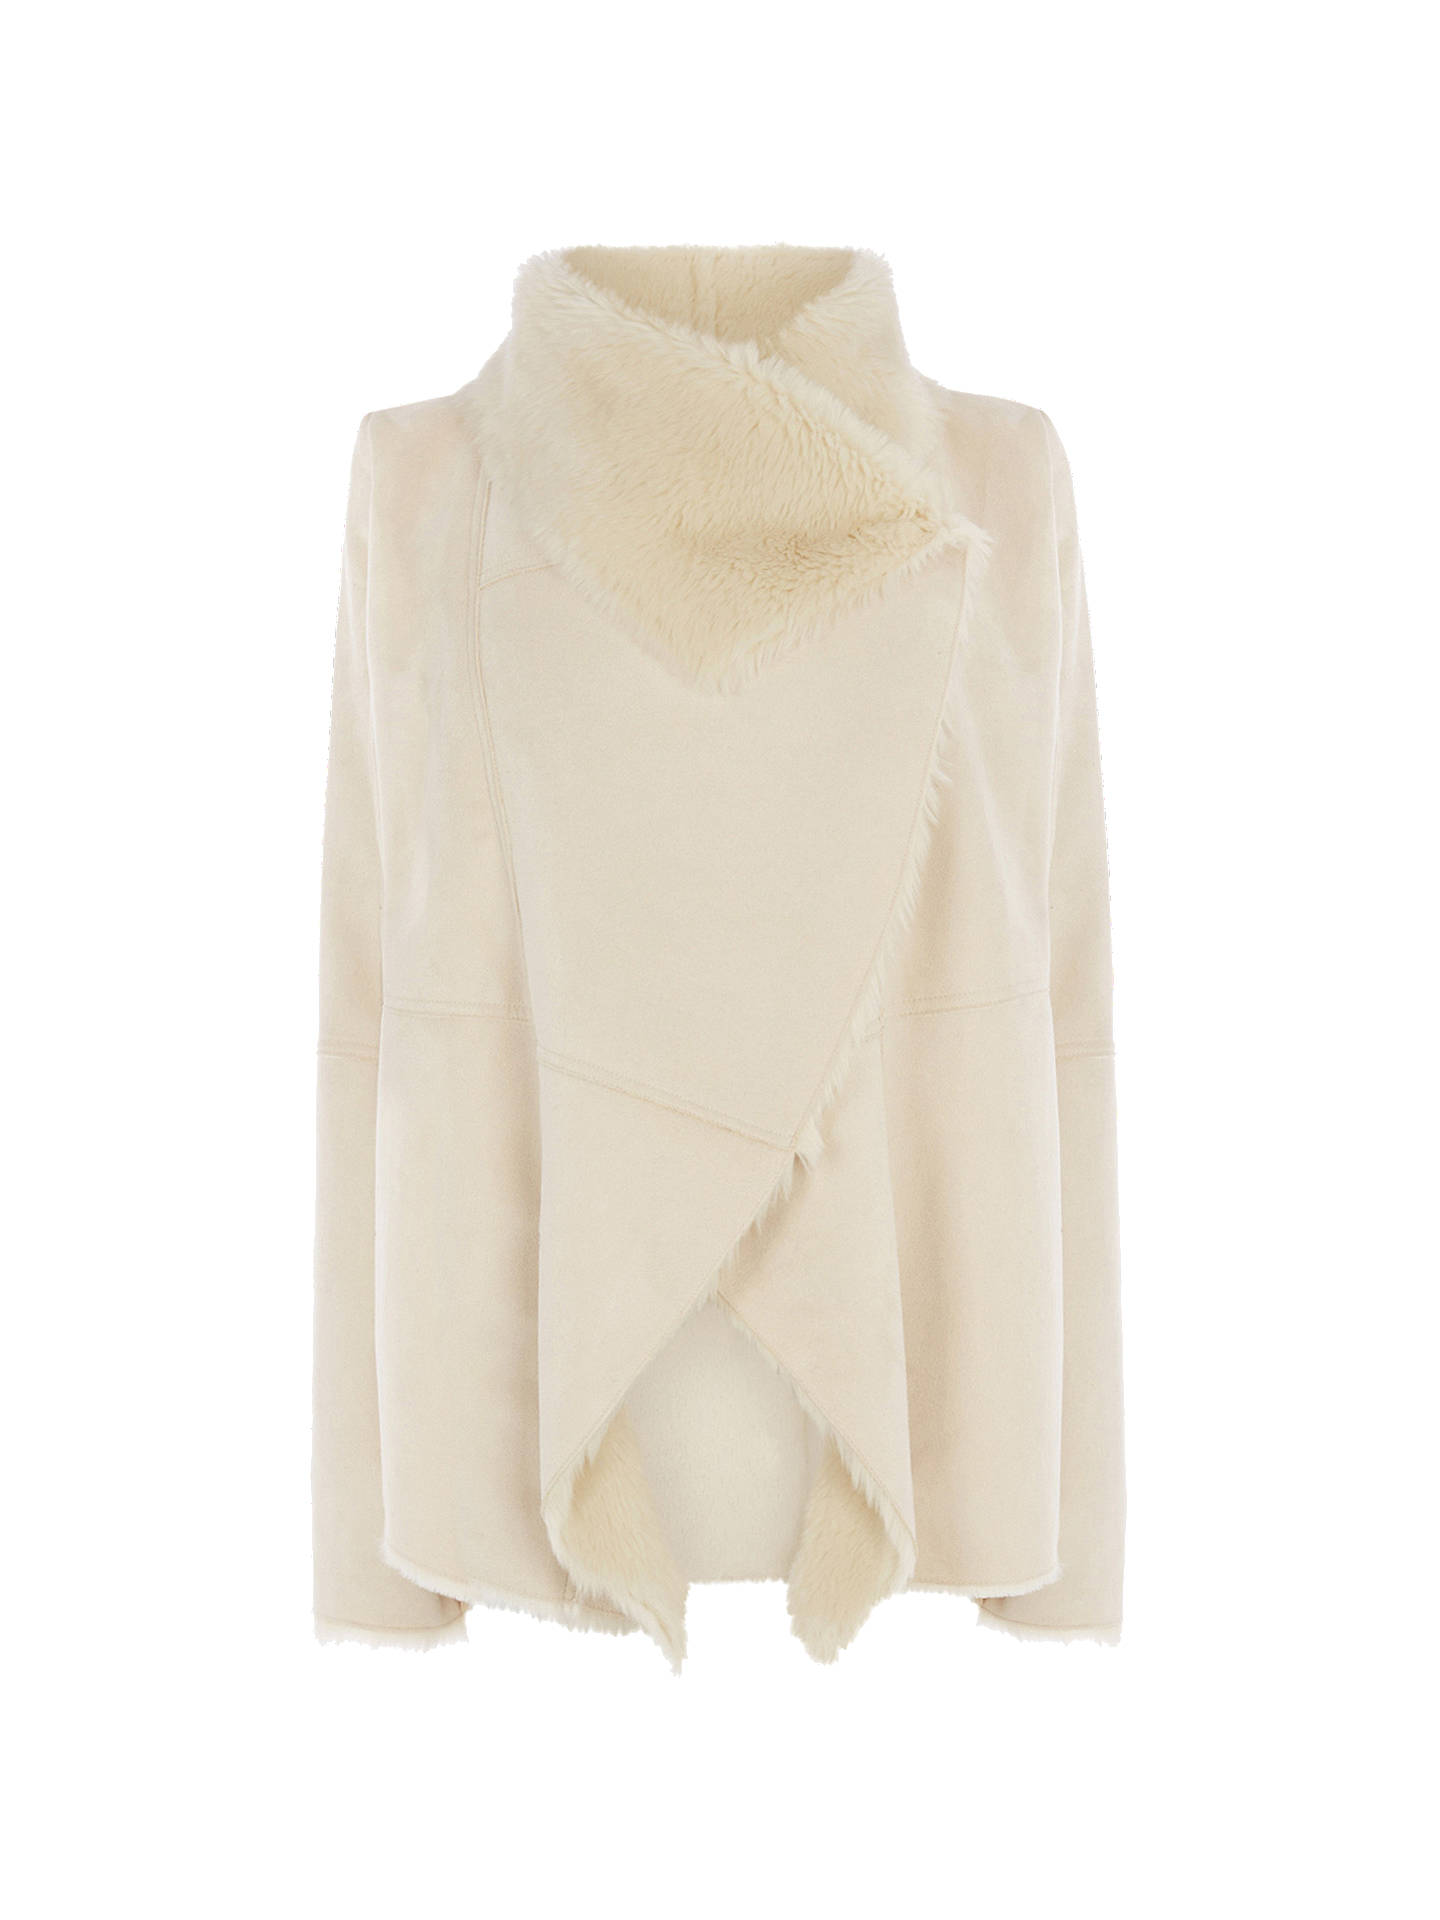 a3f383847 Oasis Cassie Faux Shearling Drape Jacket, Cream at John Lewis & Partners